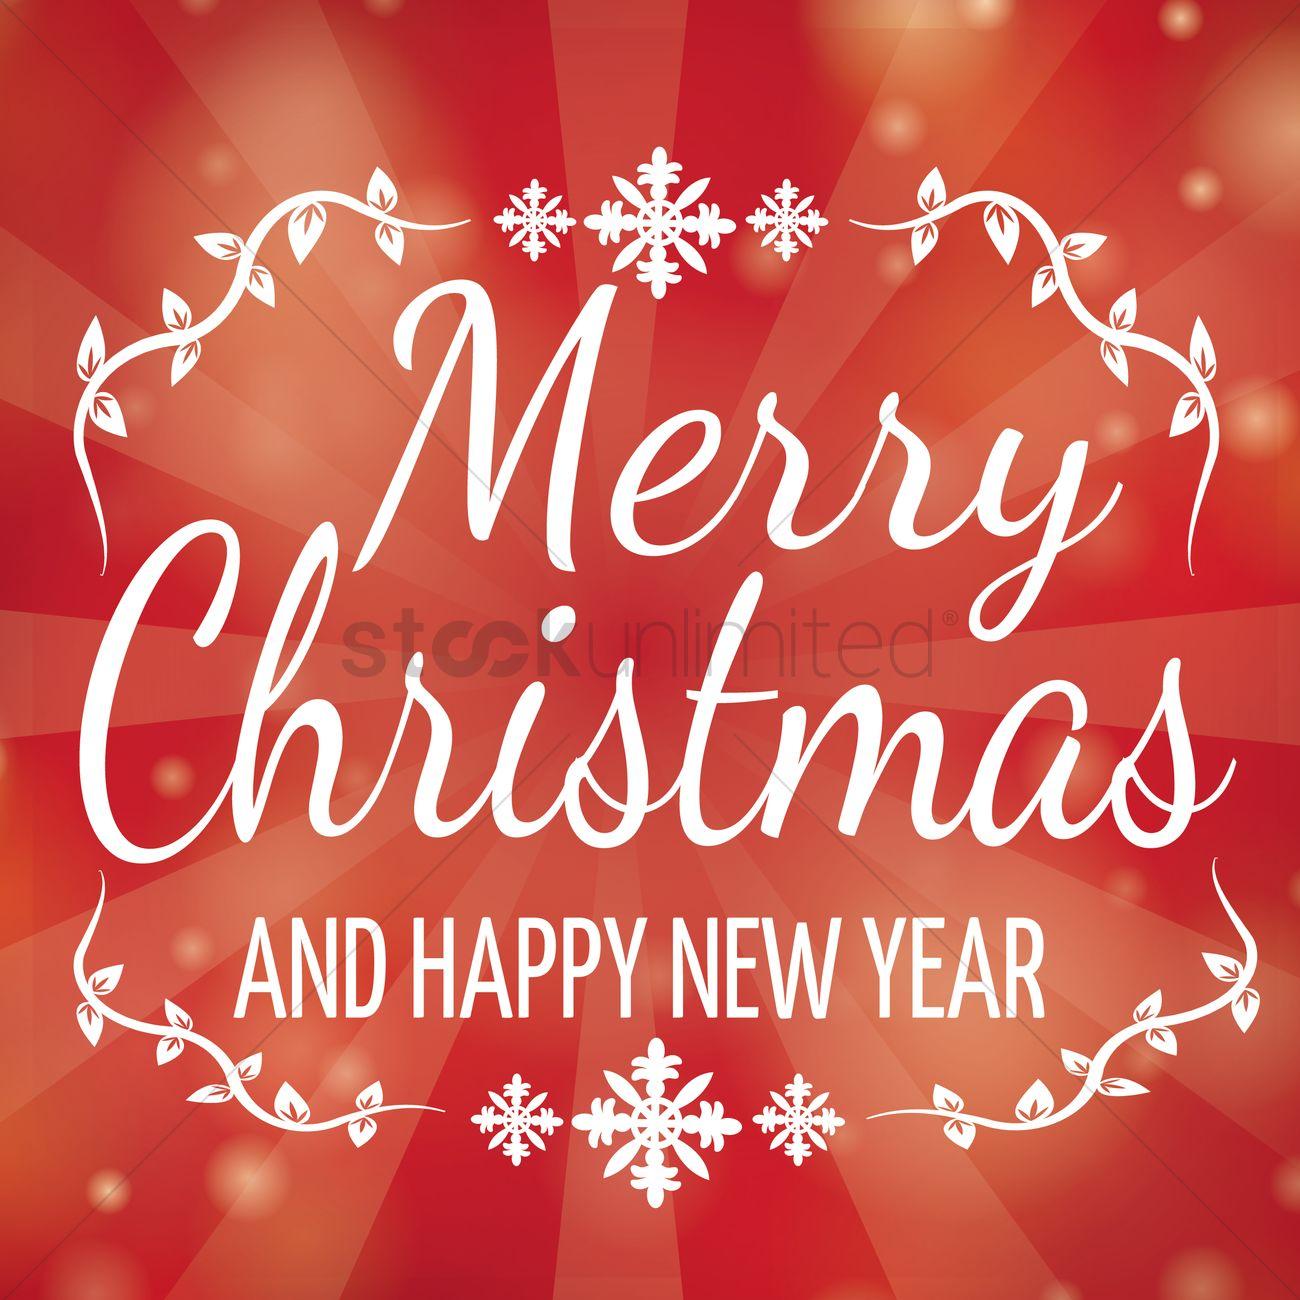 Christmas And New Year Greetings Vector Image 1812134 Stockunlimited